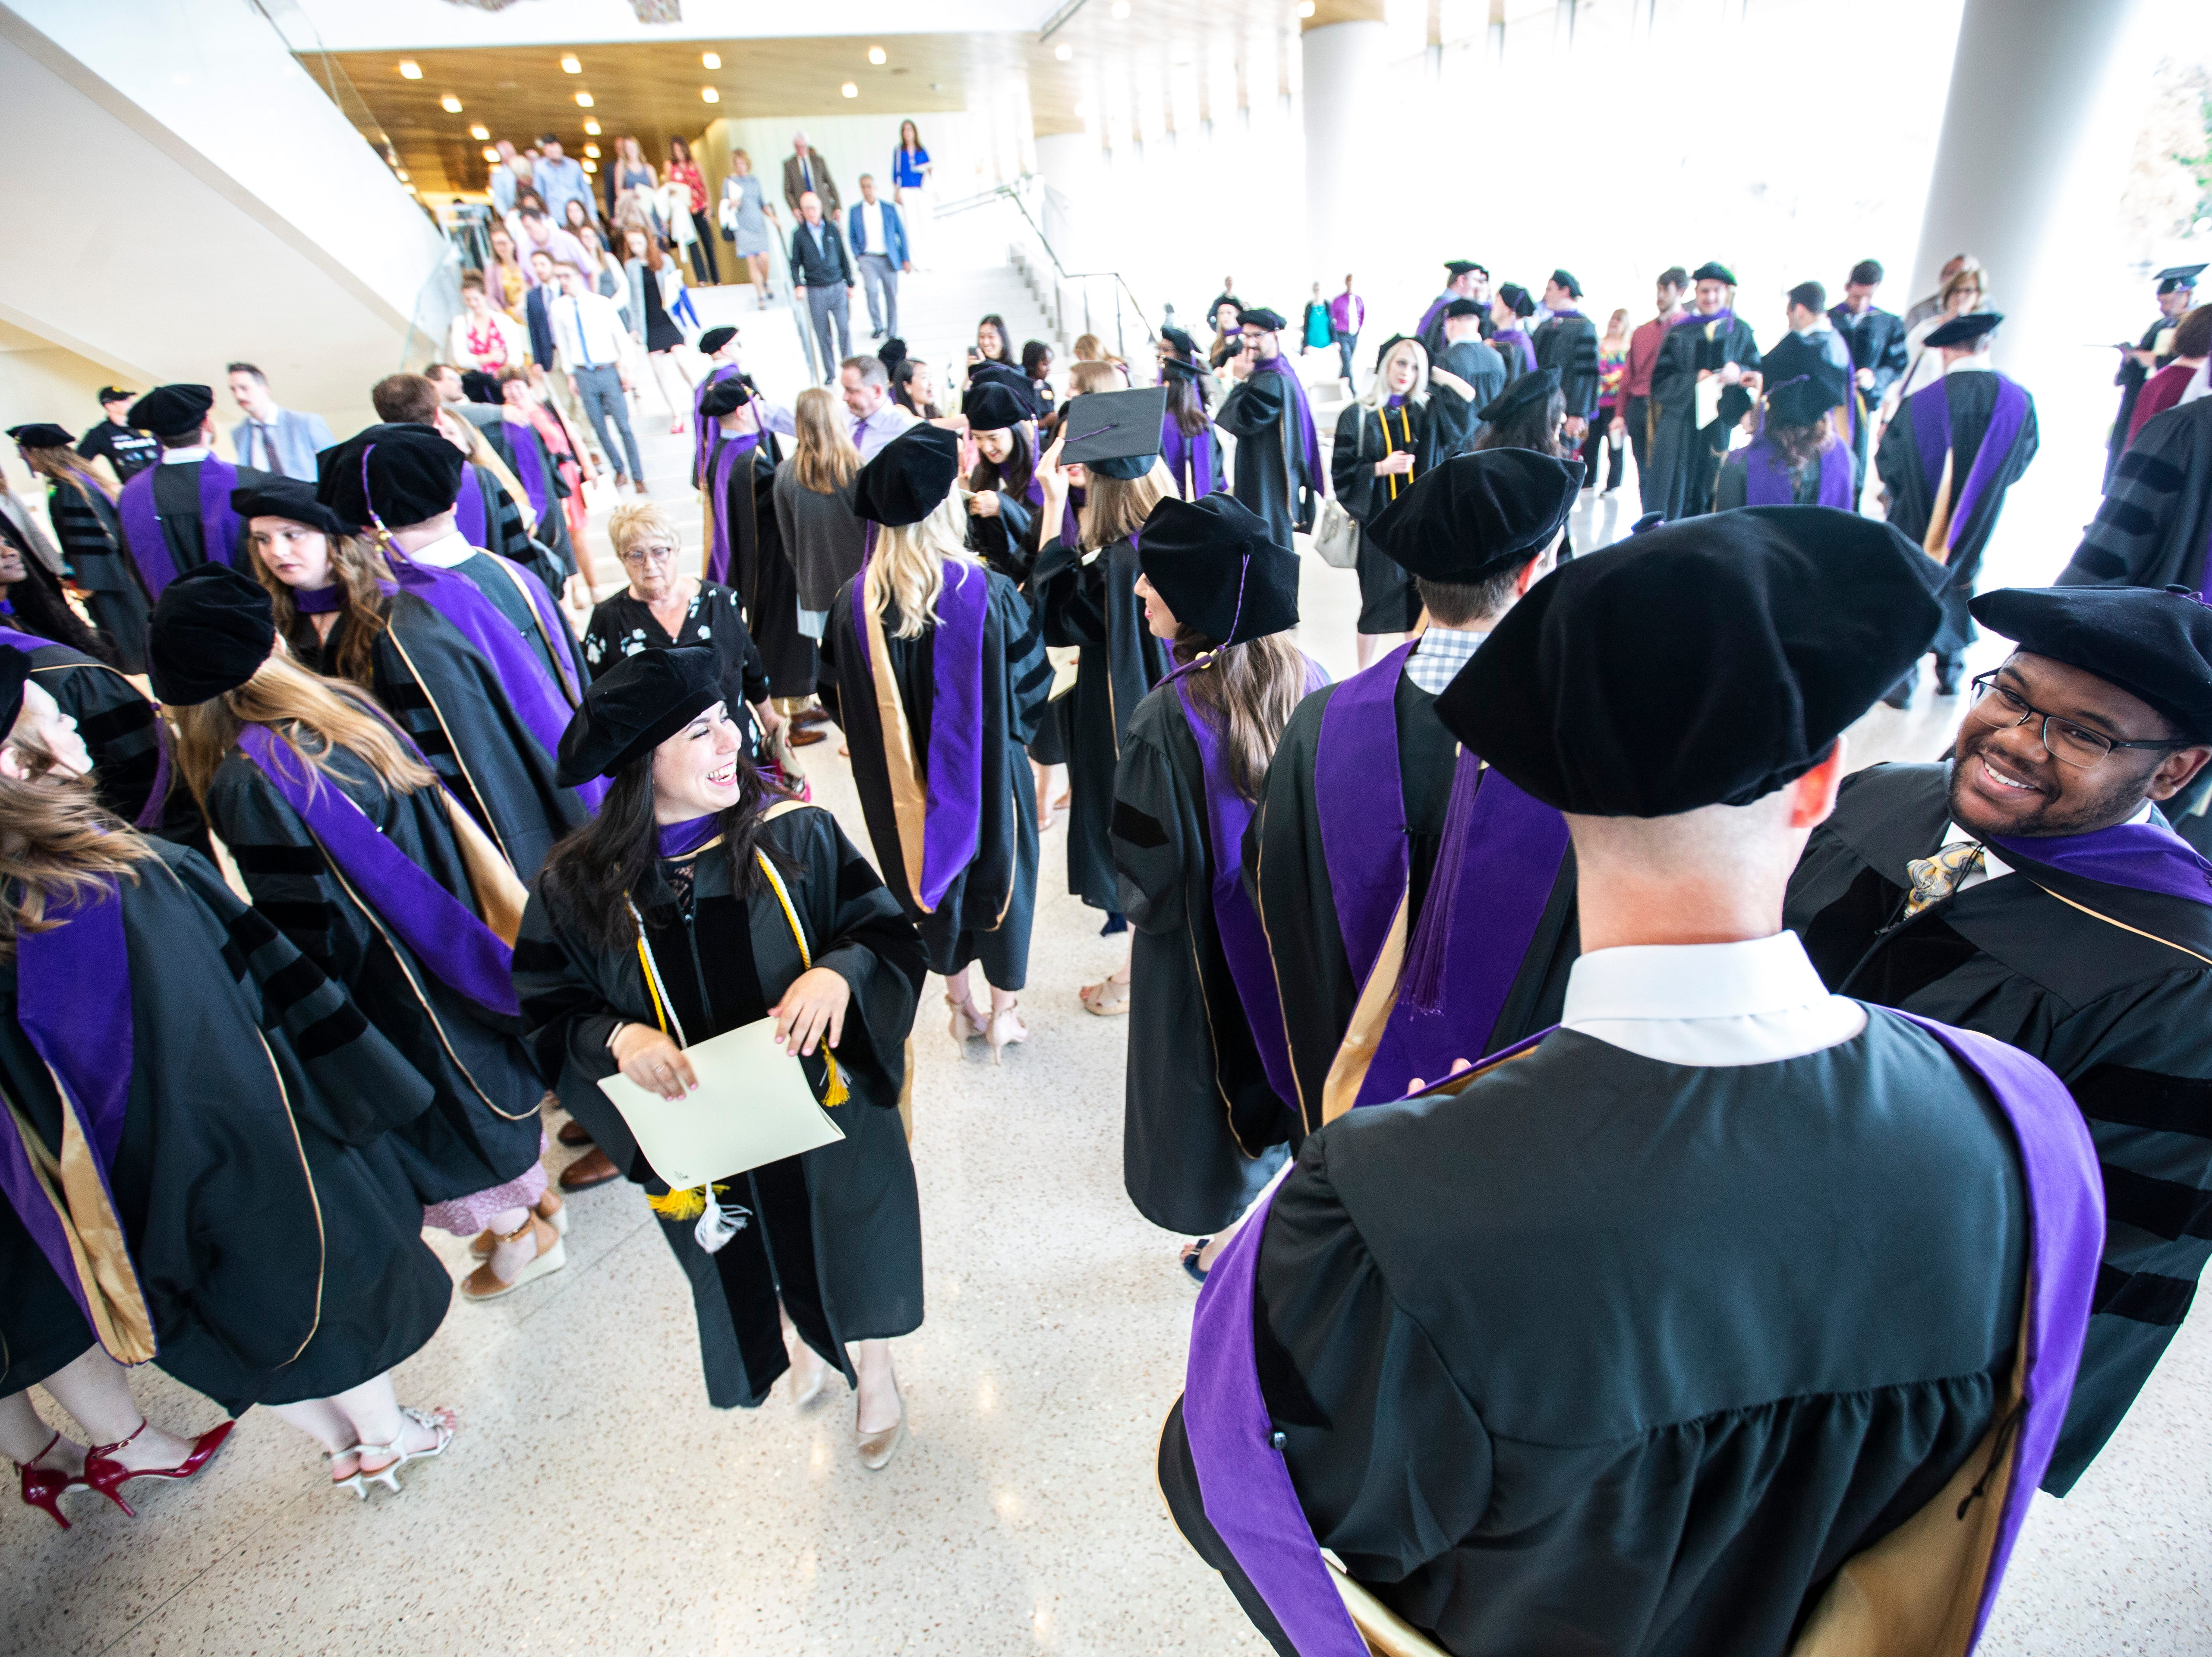 Recent graduates wait to meet up with their families after the College of Law commencement ceremony, Friday, May 10, 2019, at Hancher Auditorium on the University of Iowa campus in Iowa City, Iowa.